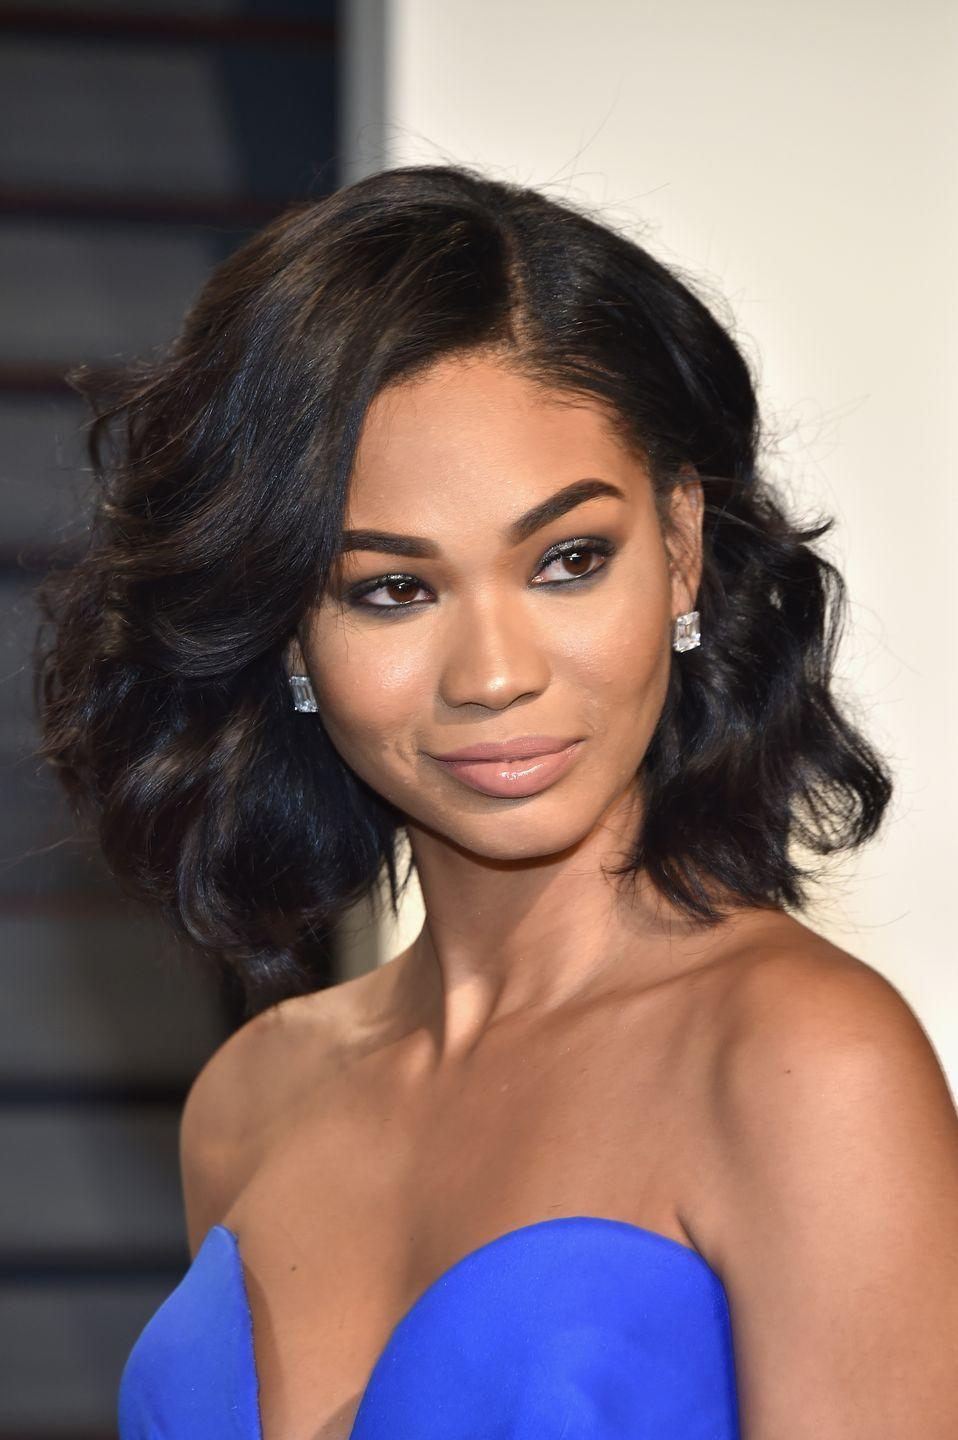 <p>Let wherever you part your hair work for you and your features. Chanel Iman's sort-of side-part paired with wispy curls is ideal for special occasions. Plus, there's so much longevity you'll get out of wearing this style once your curls fall a bit. </p>